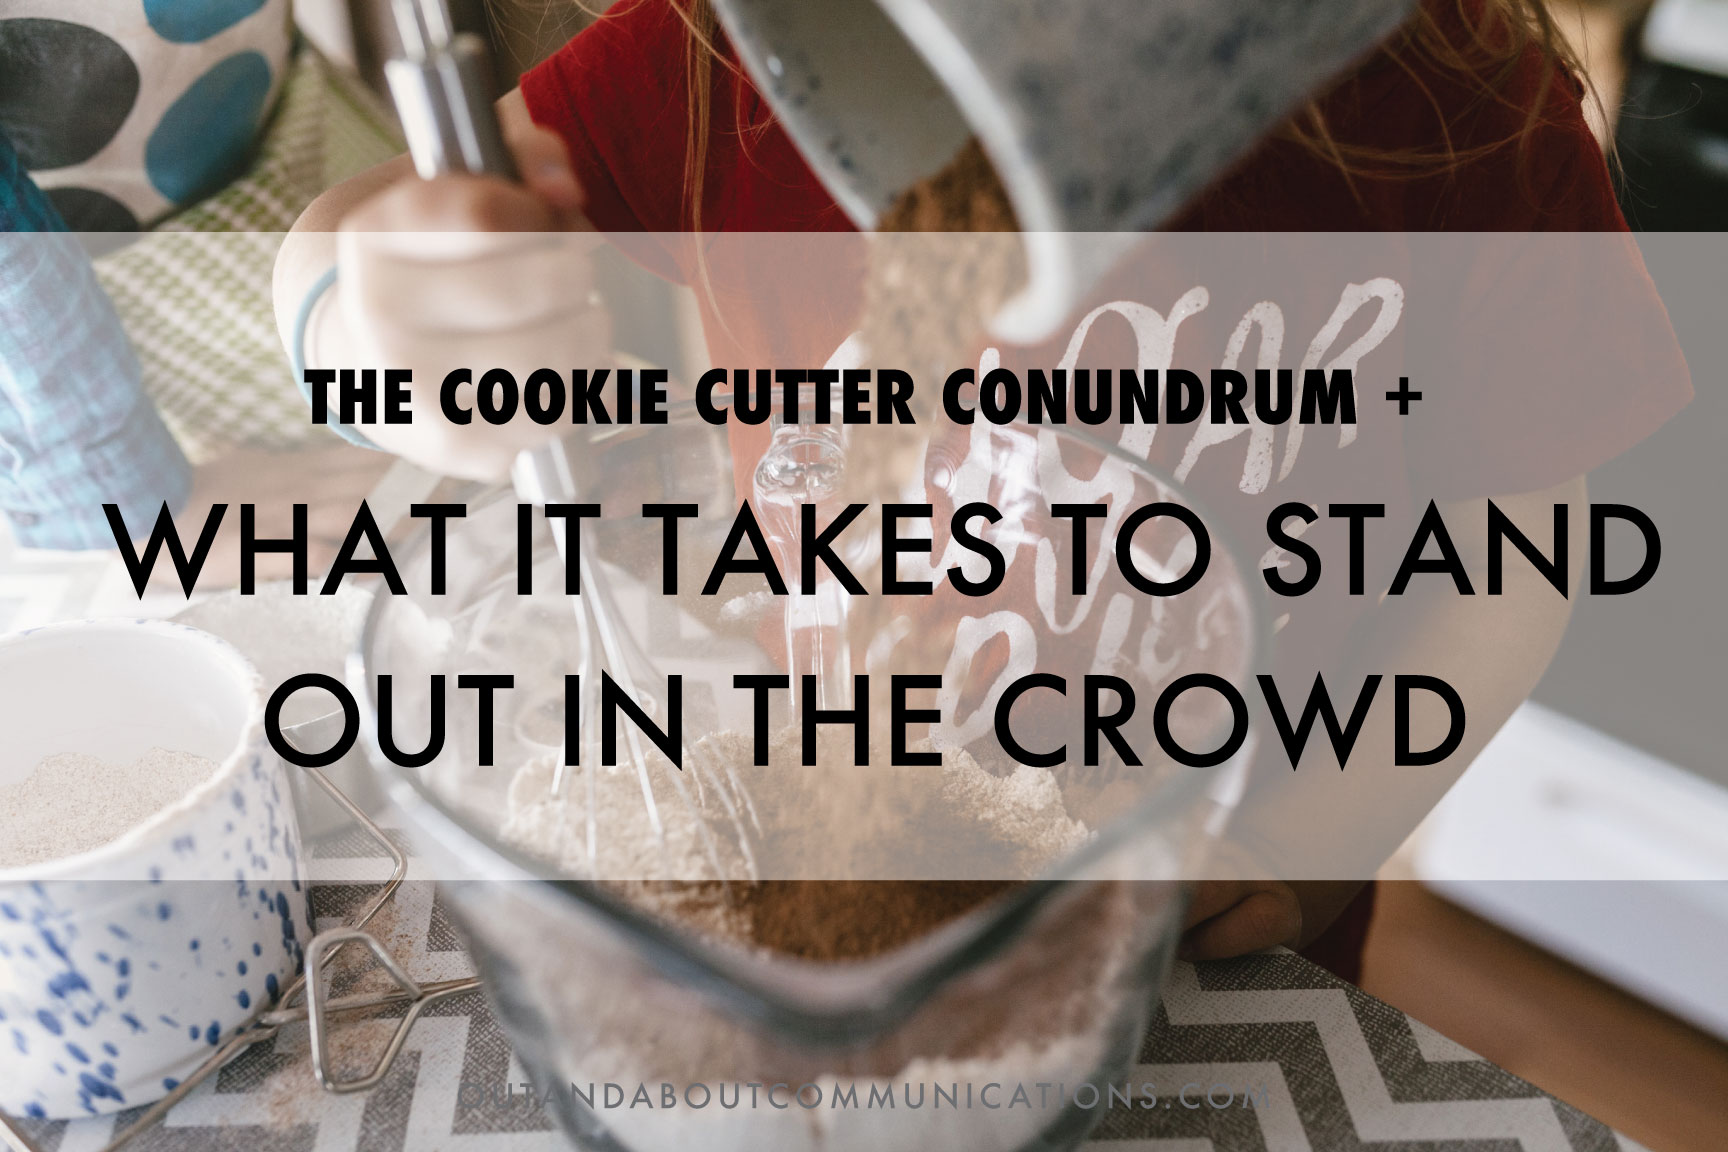 The Cookie Cutter Conundrum + What It Takes to Stand Out in the Crowd